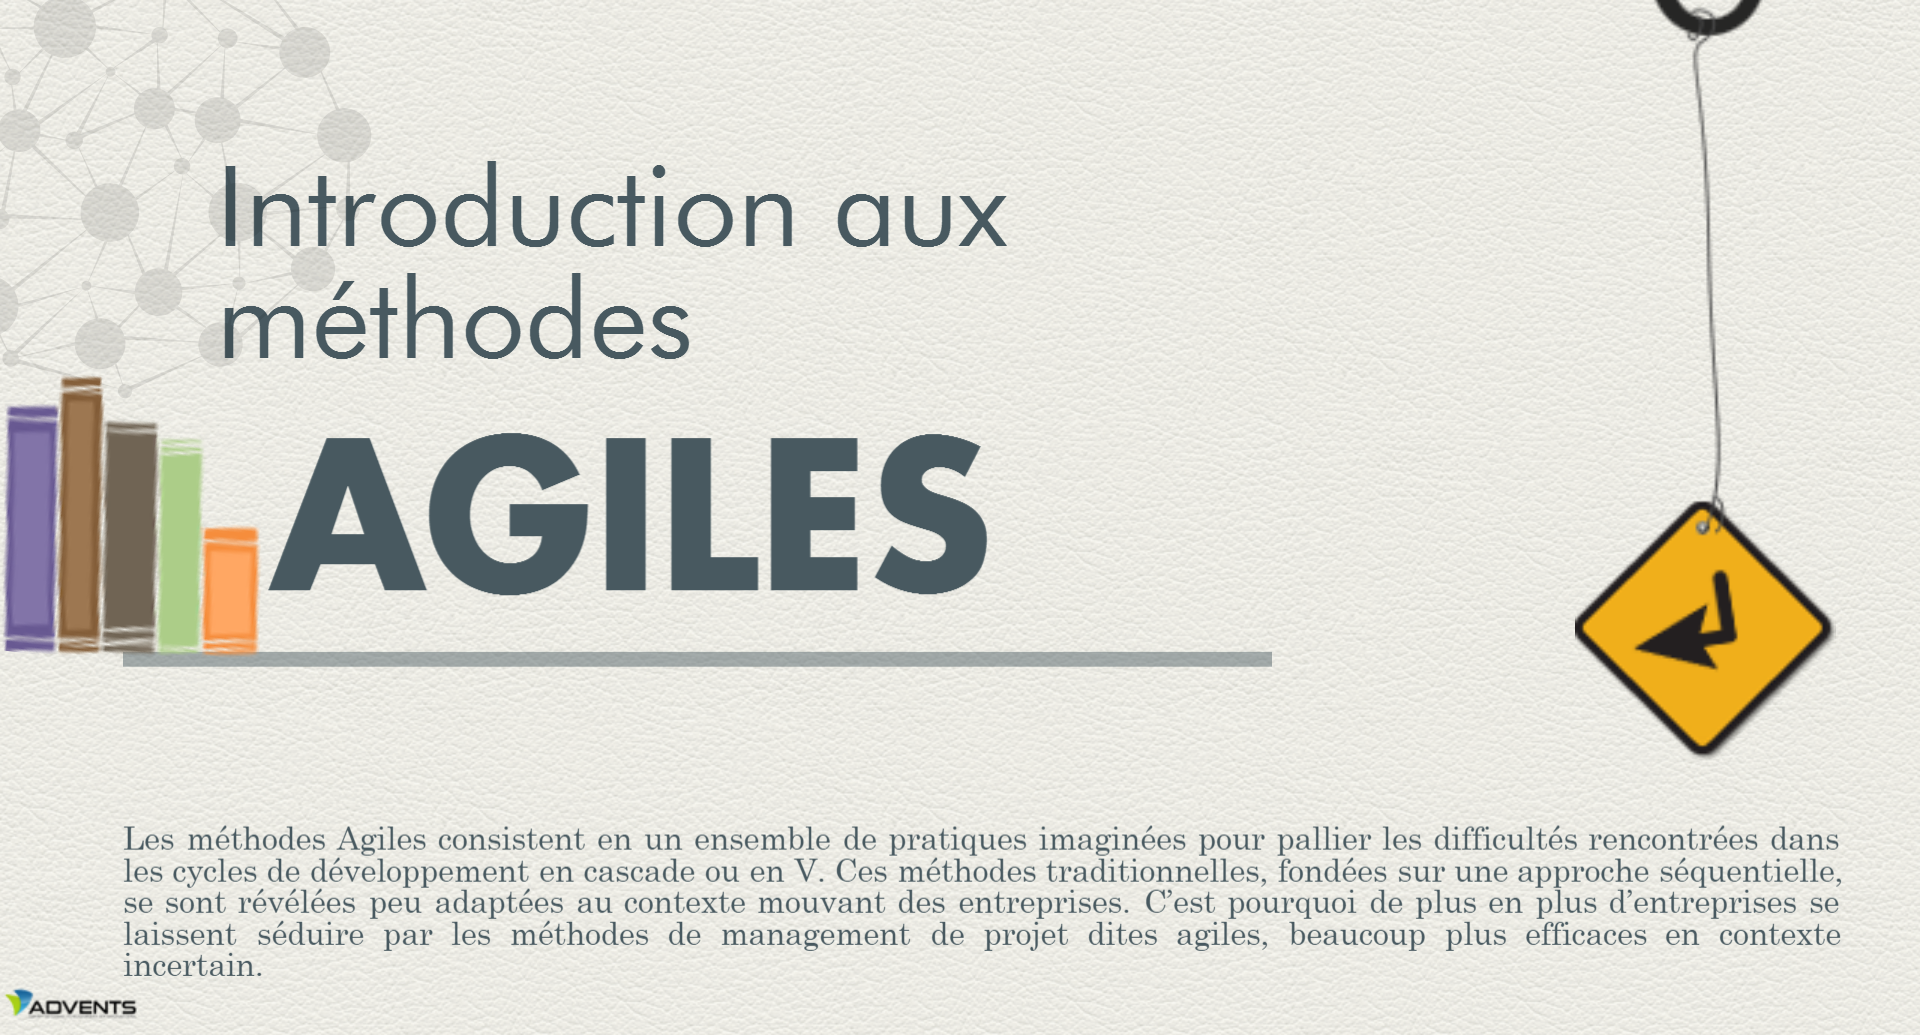 Introduction aux méthodes agiles